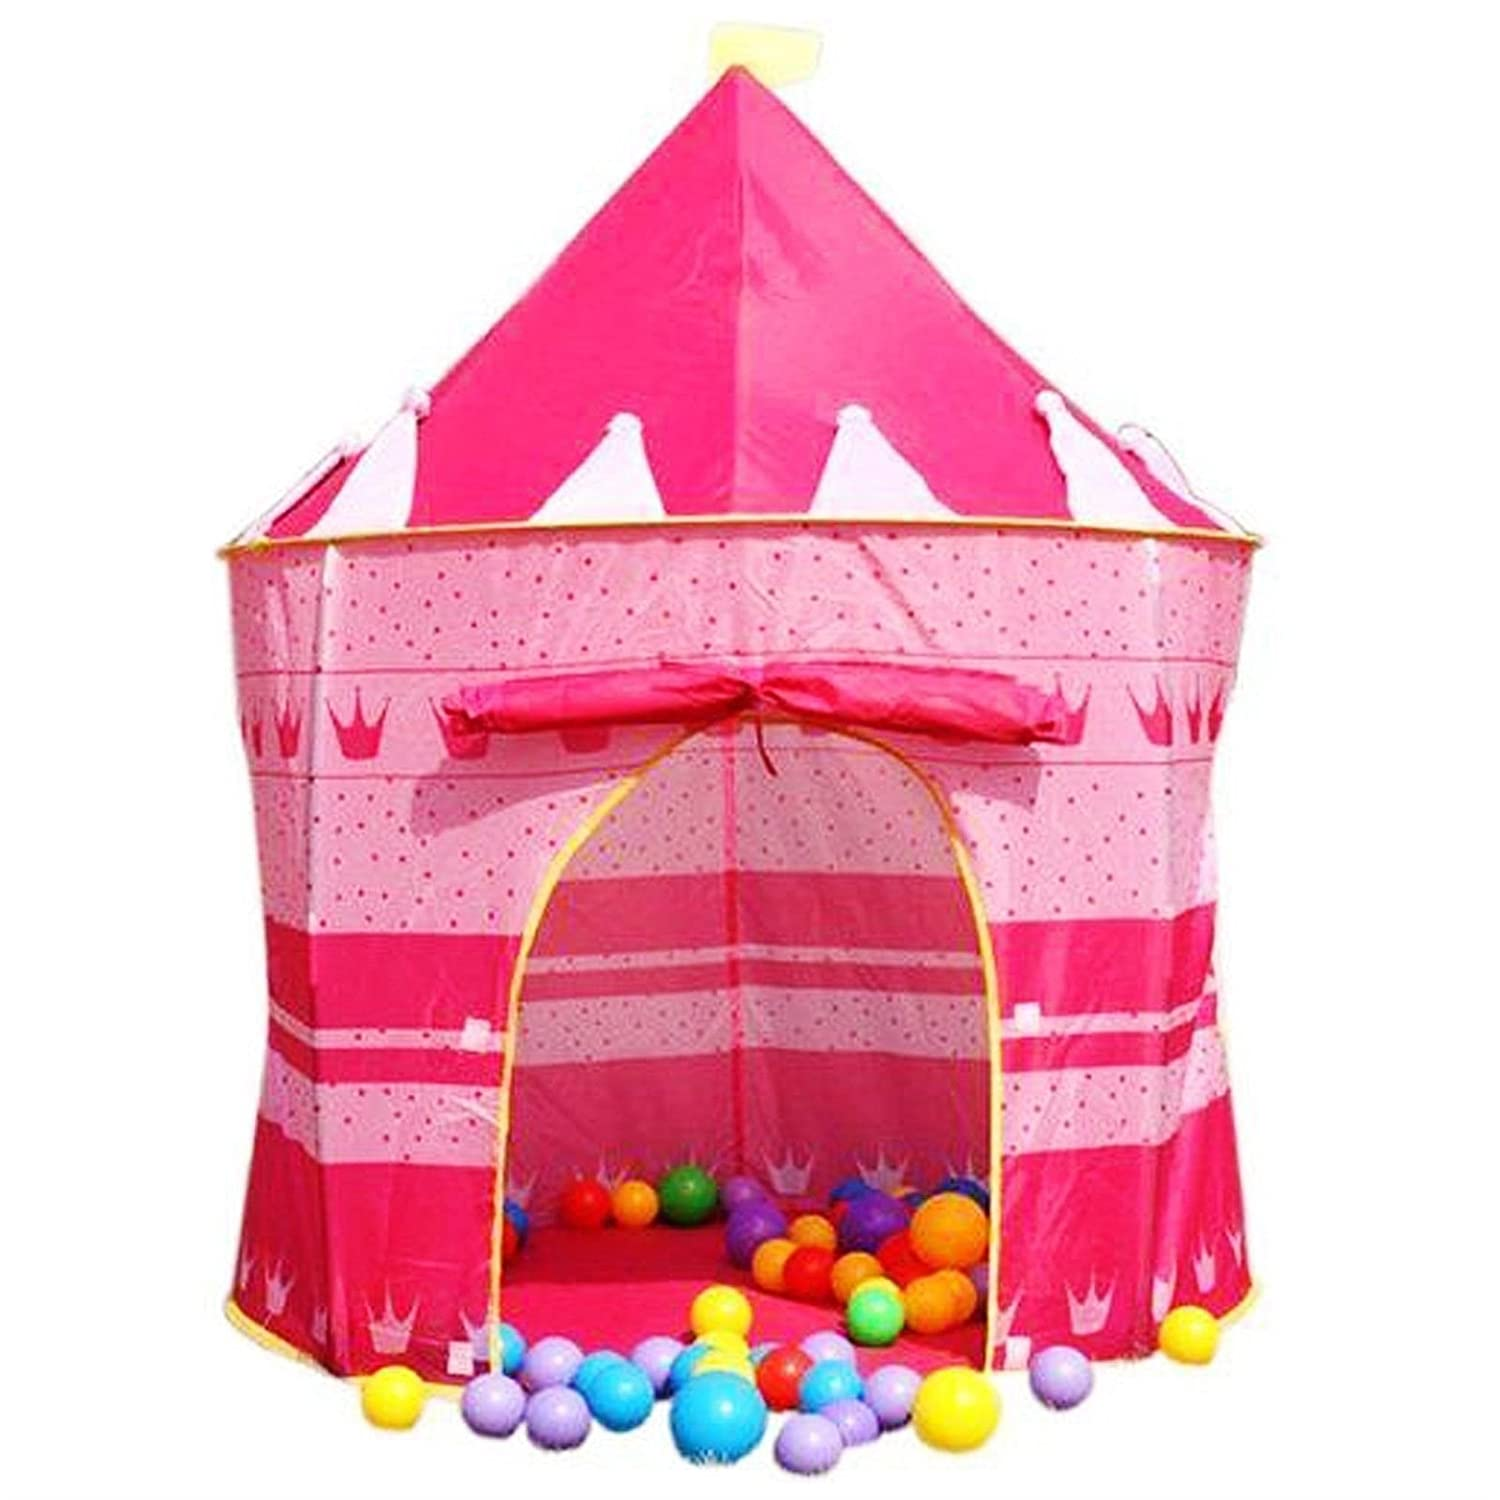 Unibos Exclusive 2015//16 Pink Crown Fairy Princess Tale Castle Pop Up Childrens Tent with Windows and Roll Up Door Pink Girls Indoor or Outdoor Use Girls Pink Toy Play Tent Assorted Design//Colour Den Playhouse